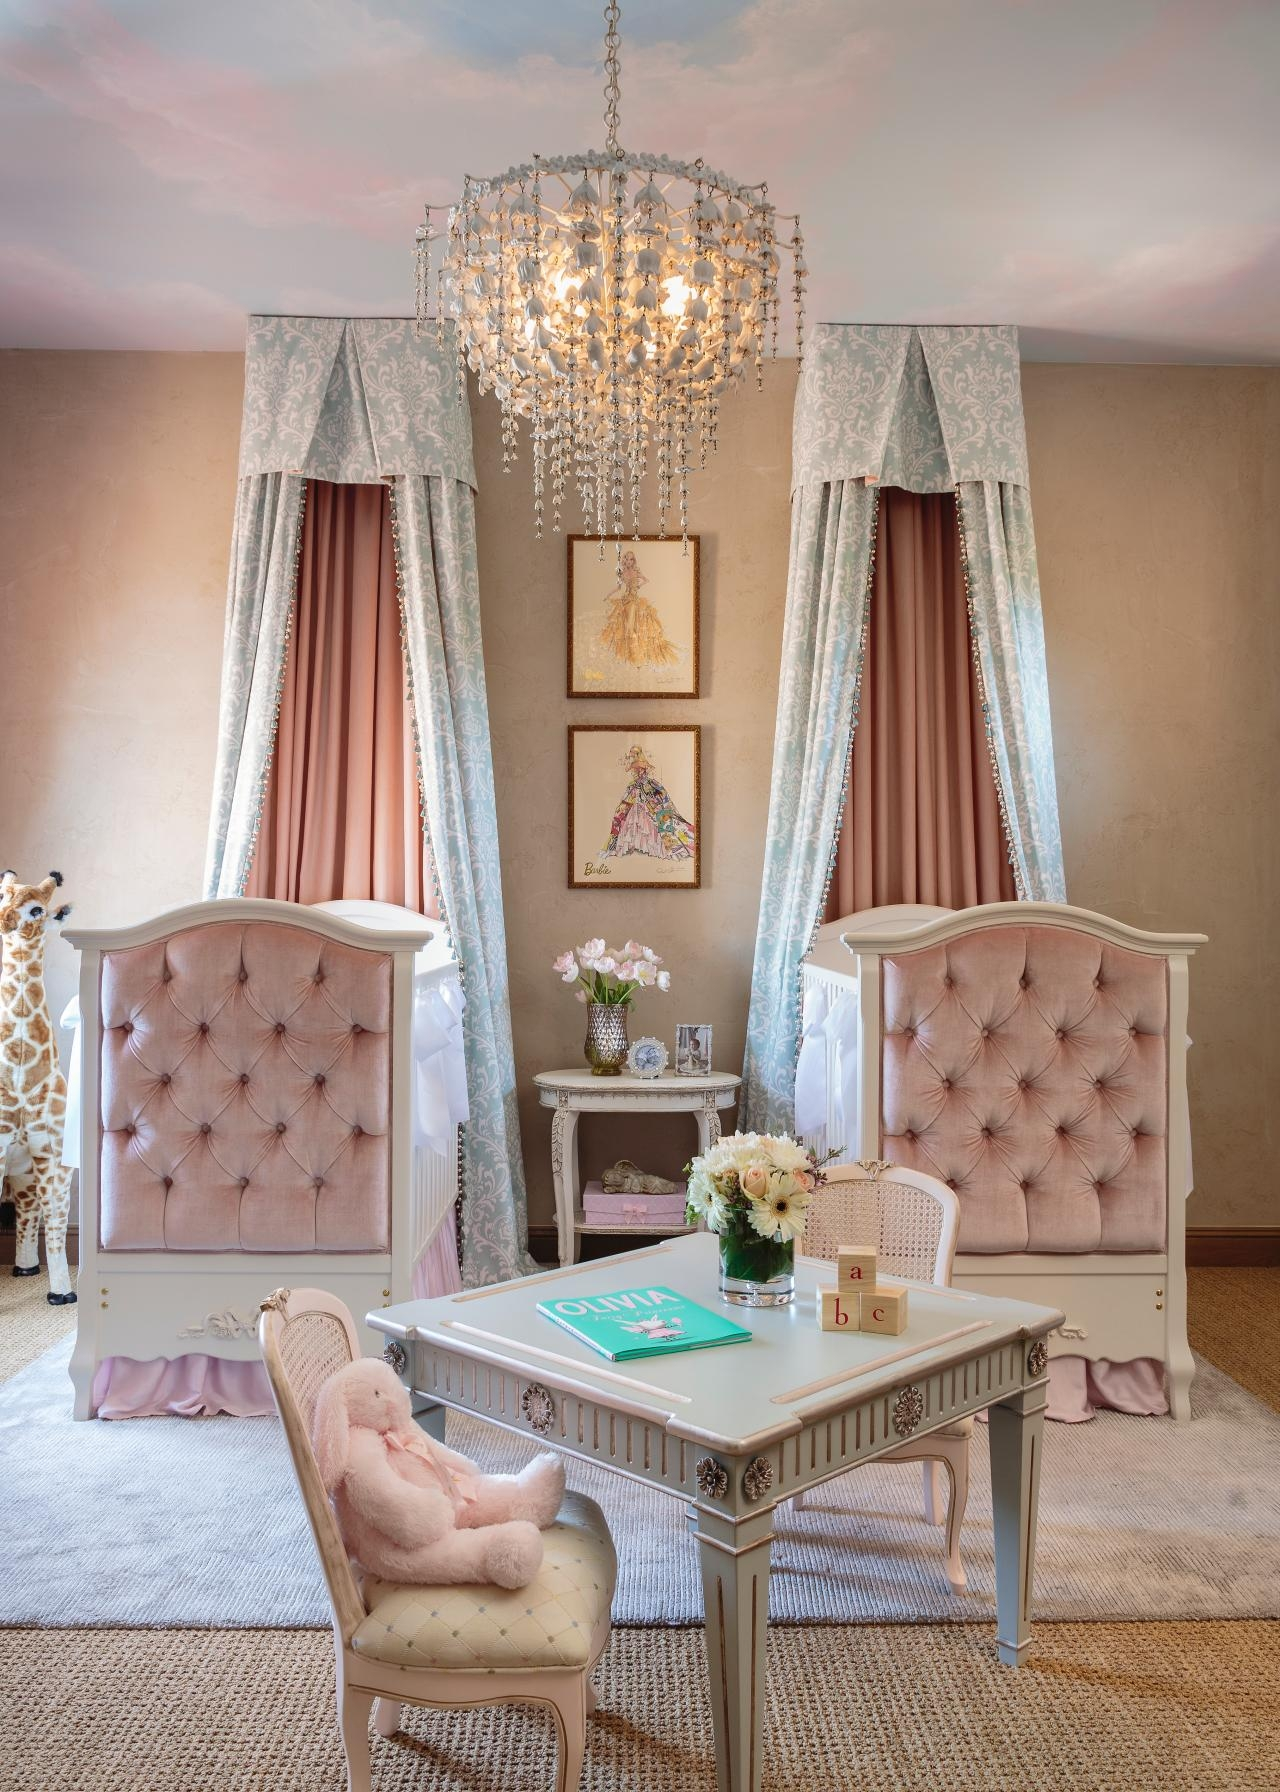 Featured Image of Crystal Chandeliers For Baby Girl Room